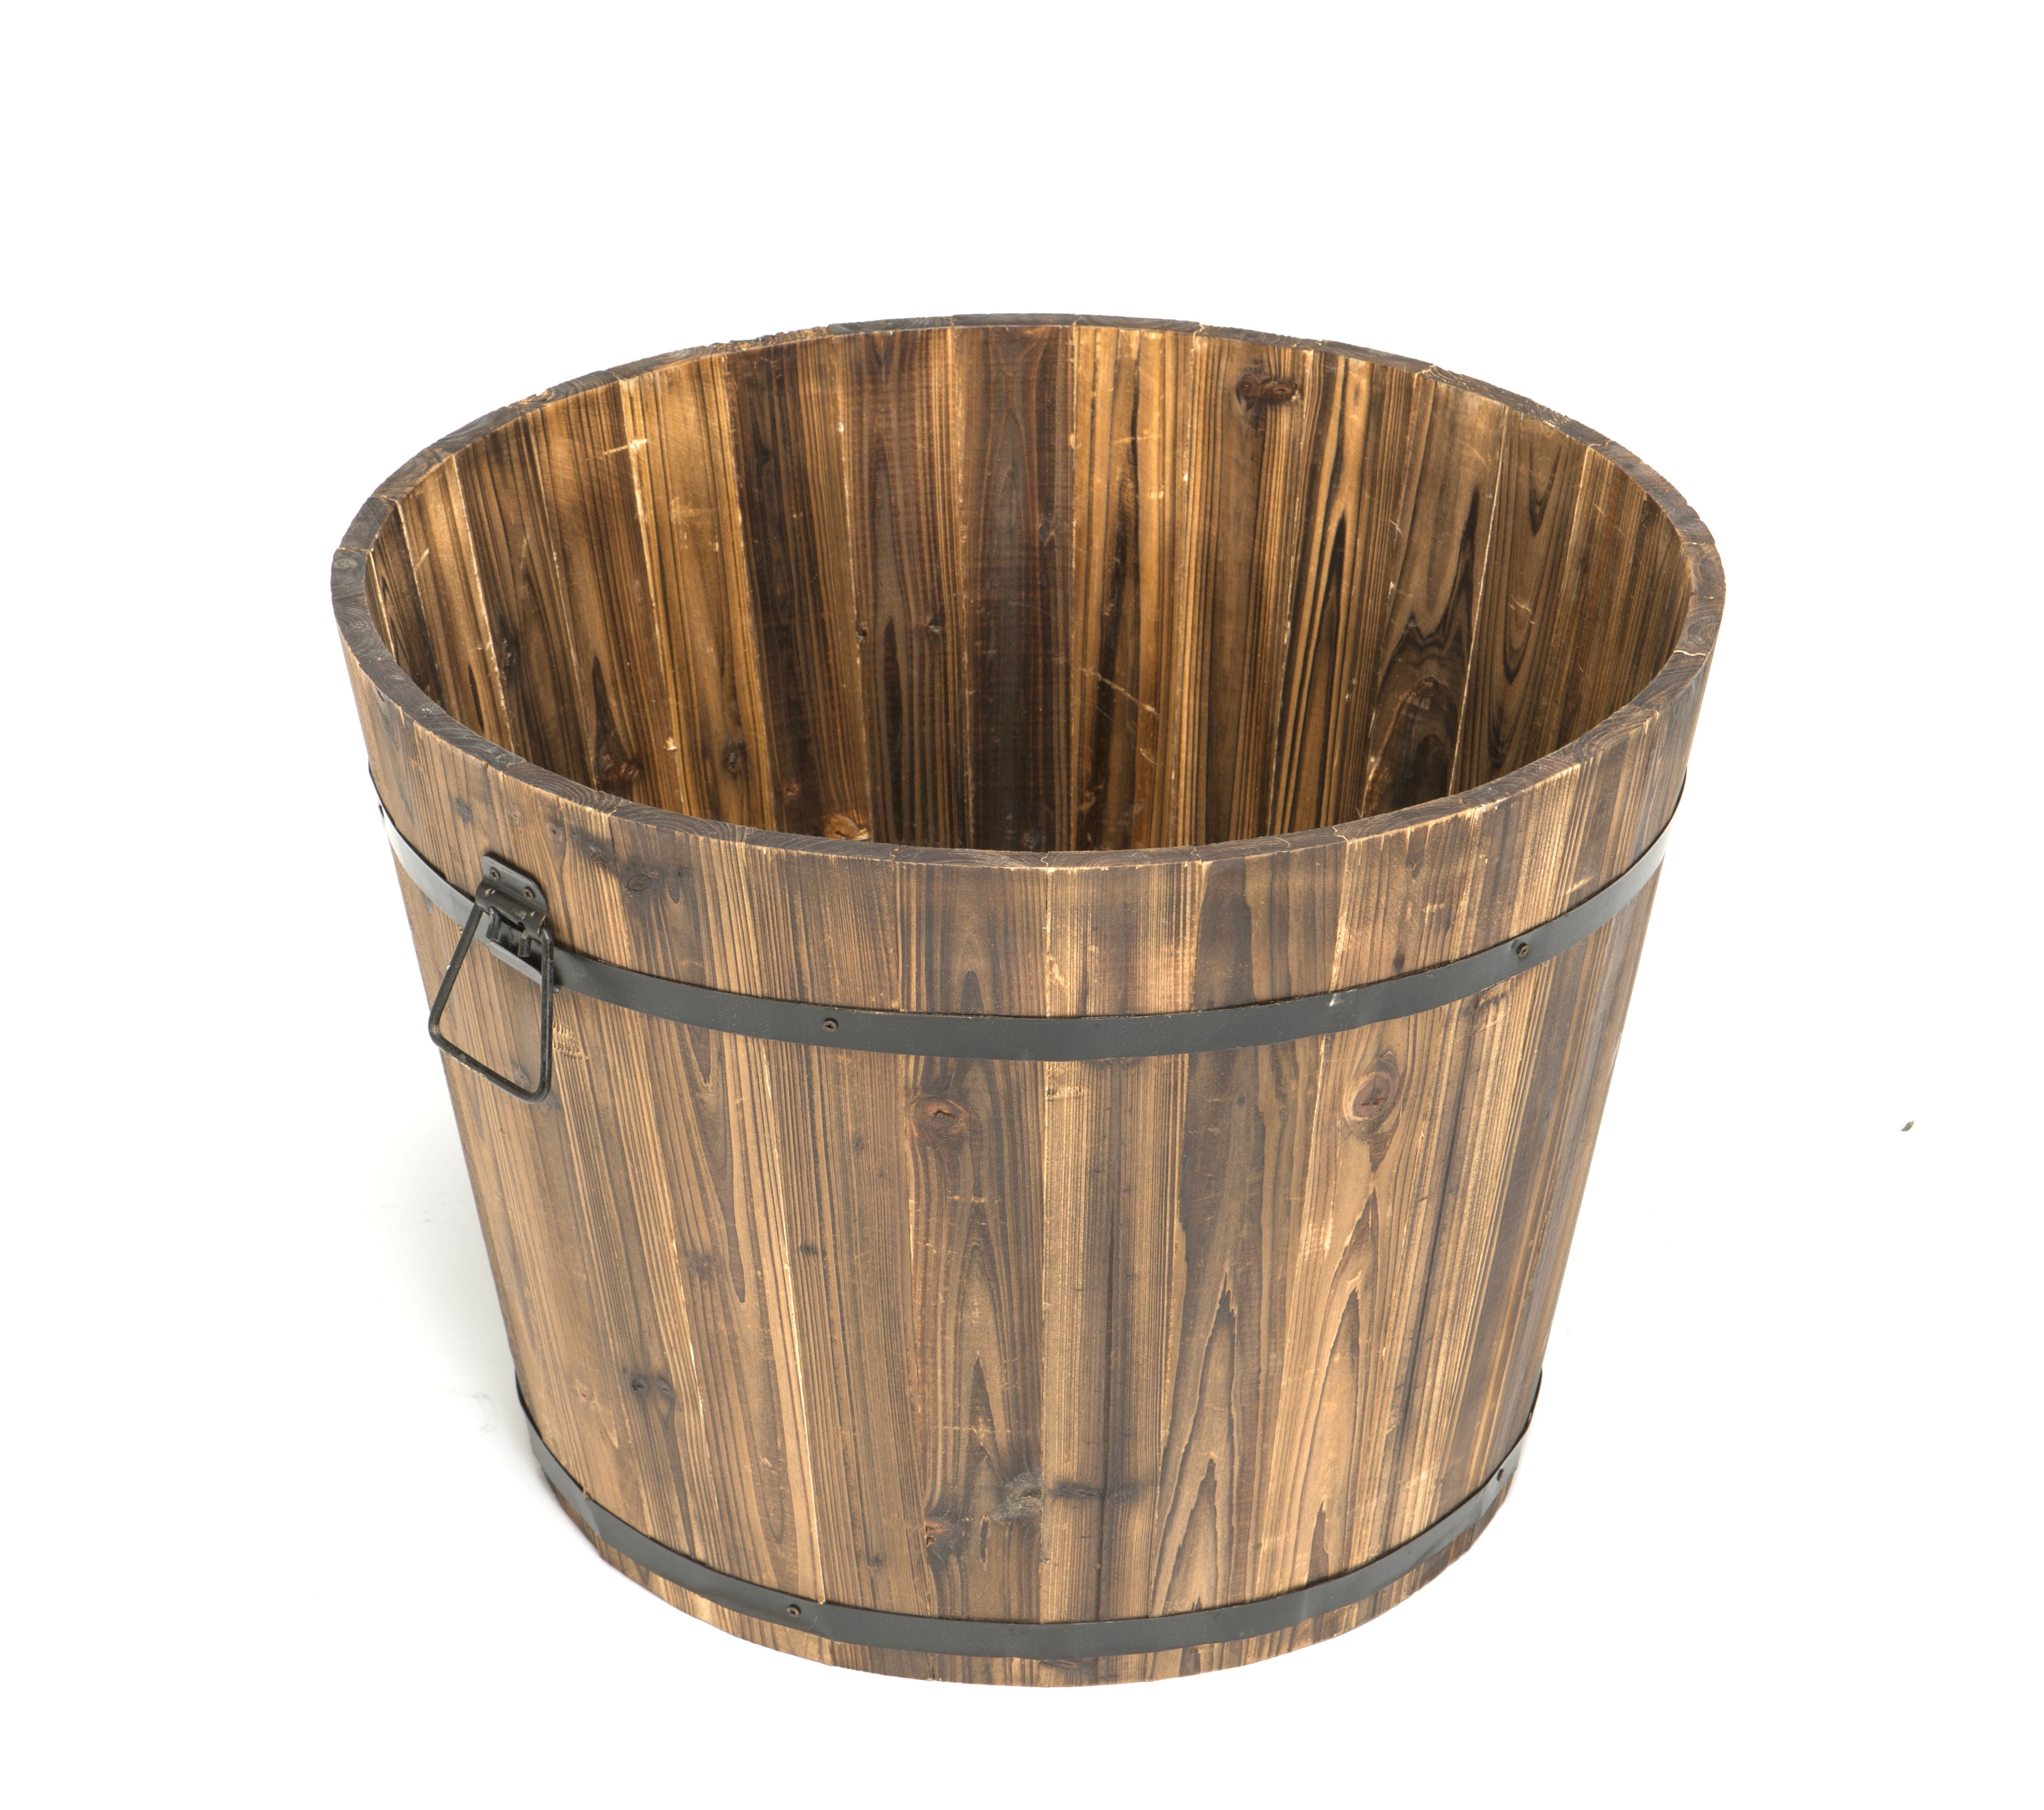 Large Wooden Barrel Planters: Large Round Whiskey Barrel Planter